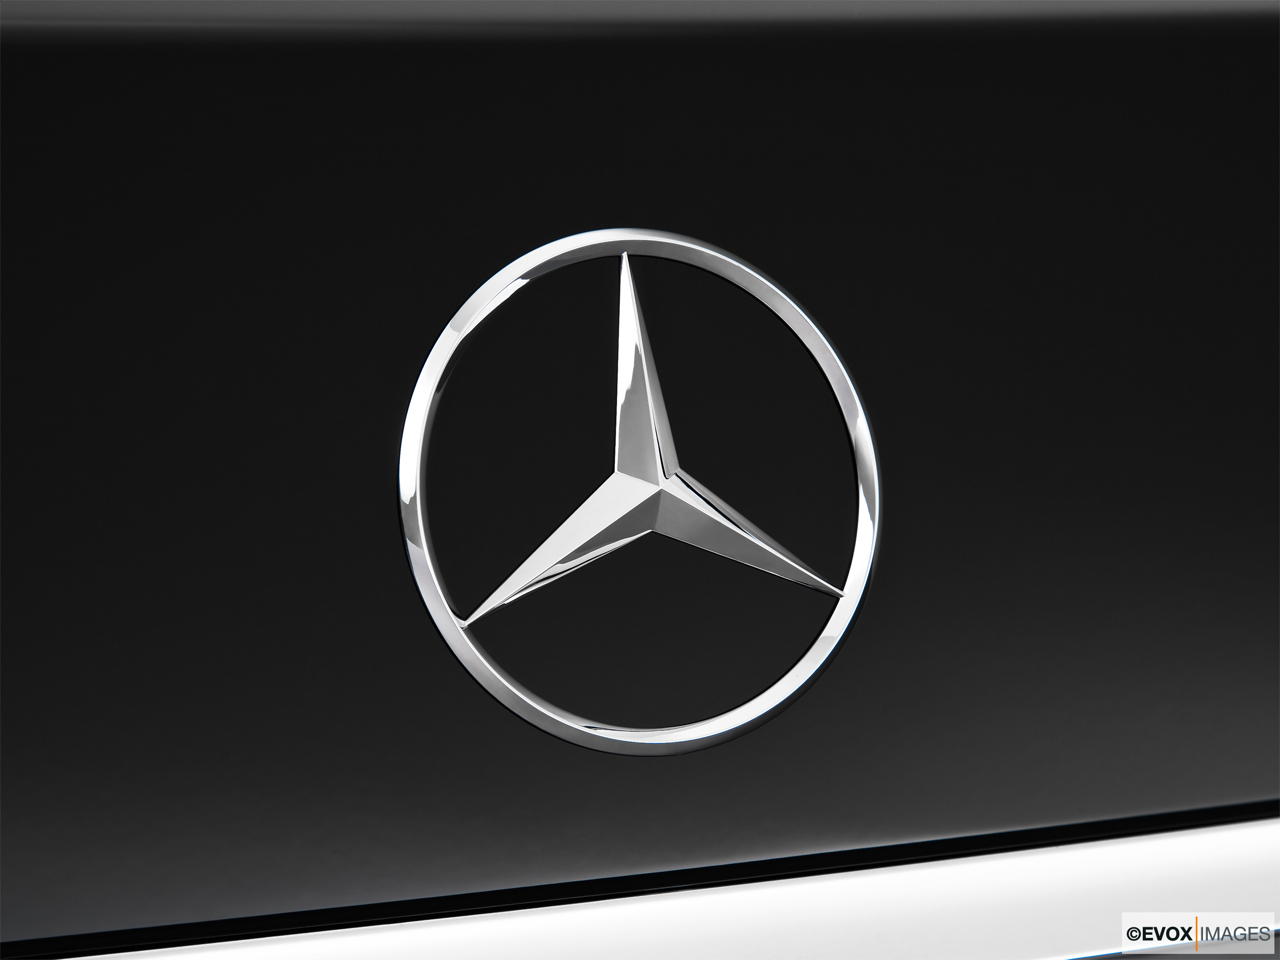 2010 Mercedes-Benz S-Class Hybrid S400 Rear manufacture badge/emblem